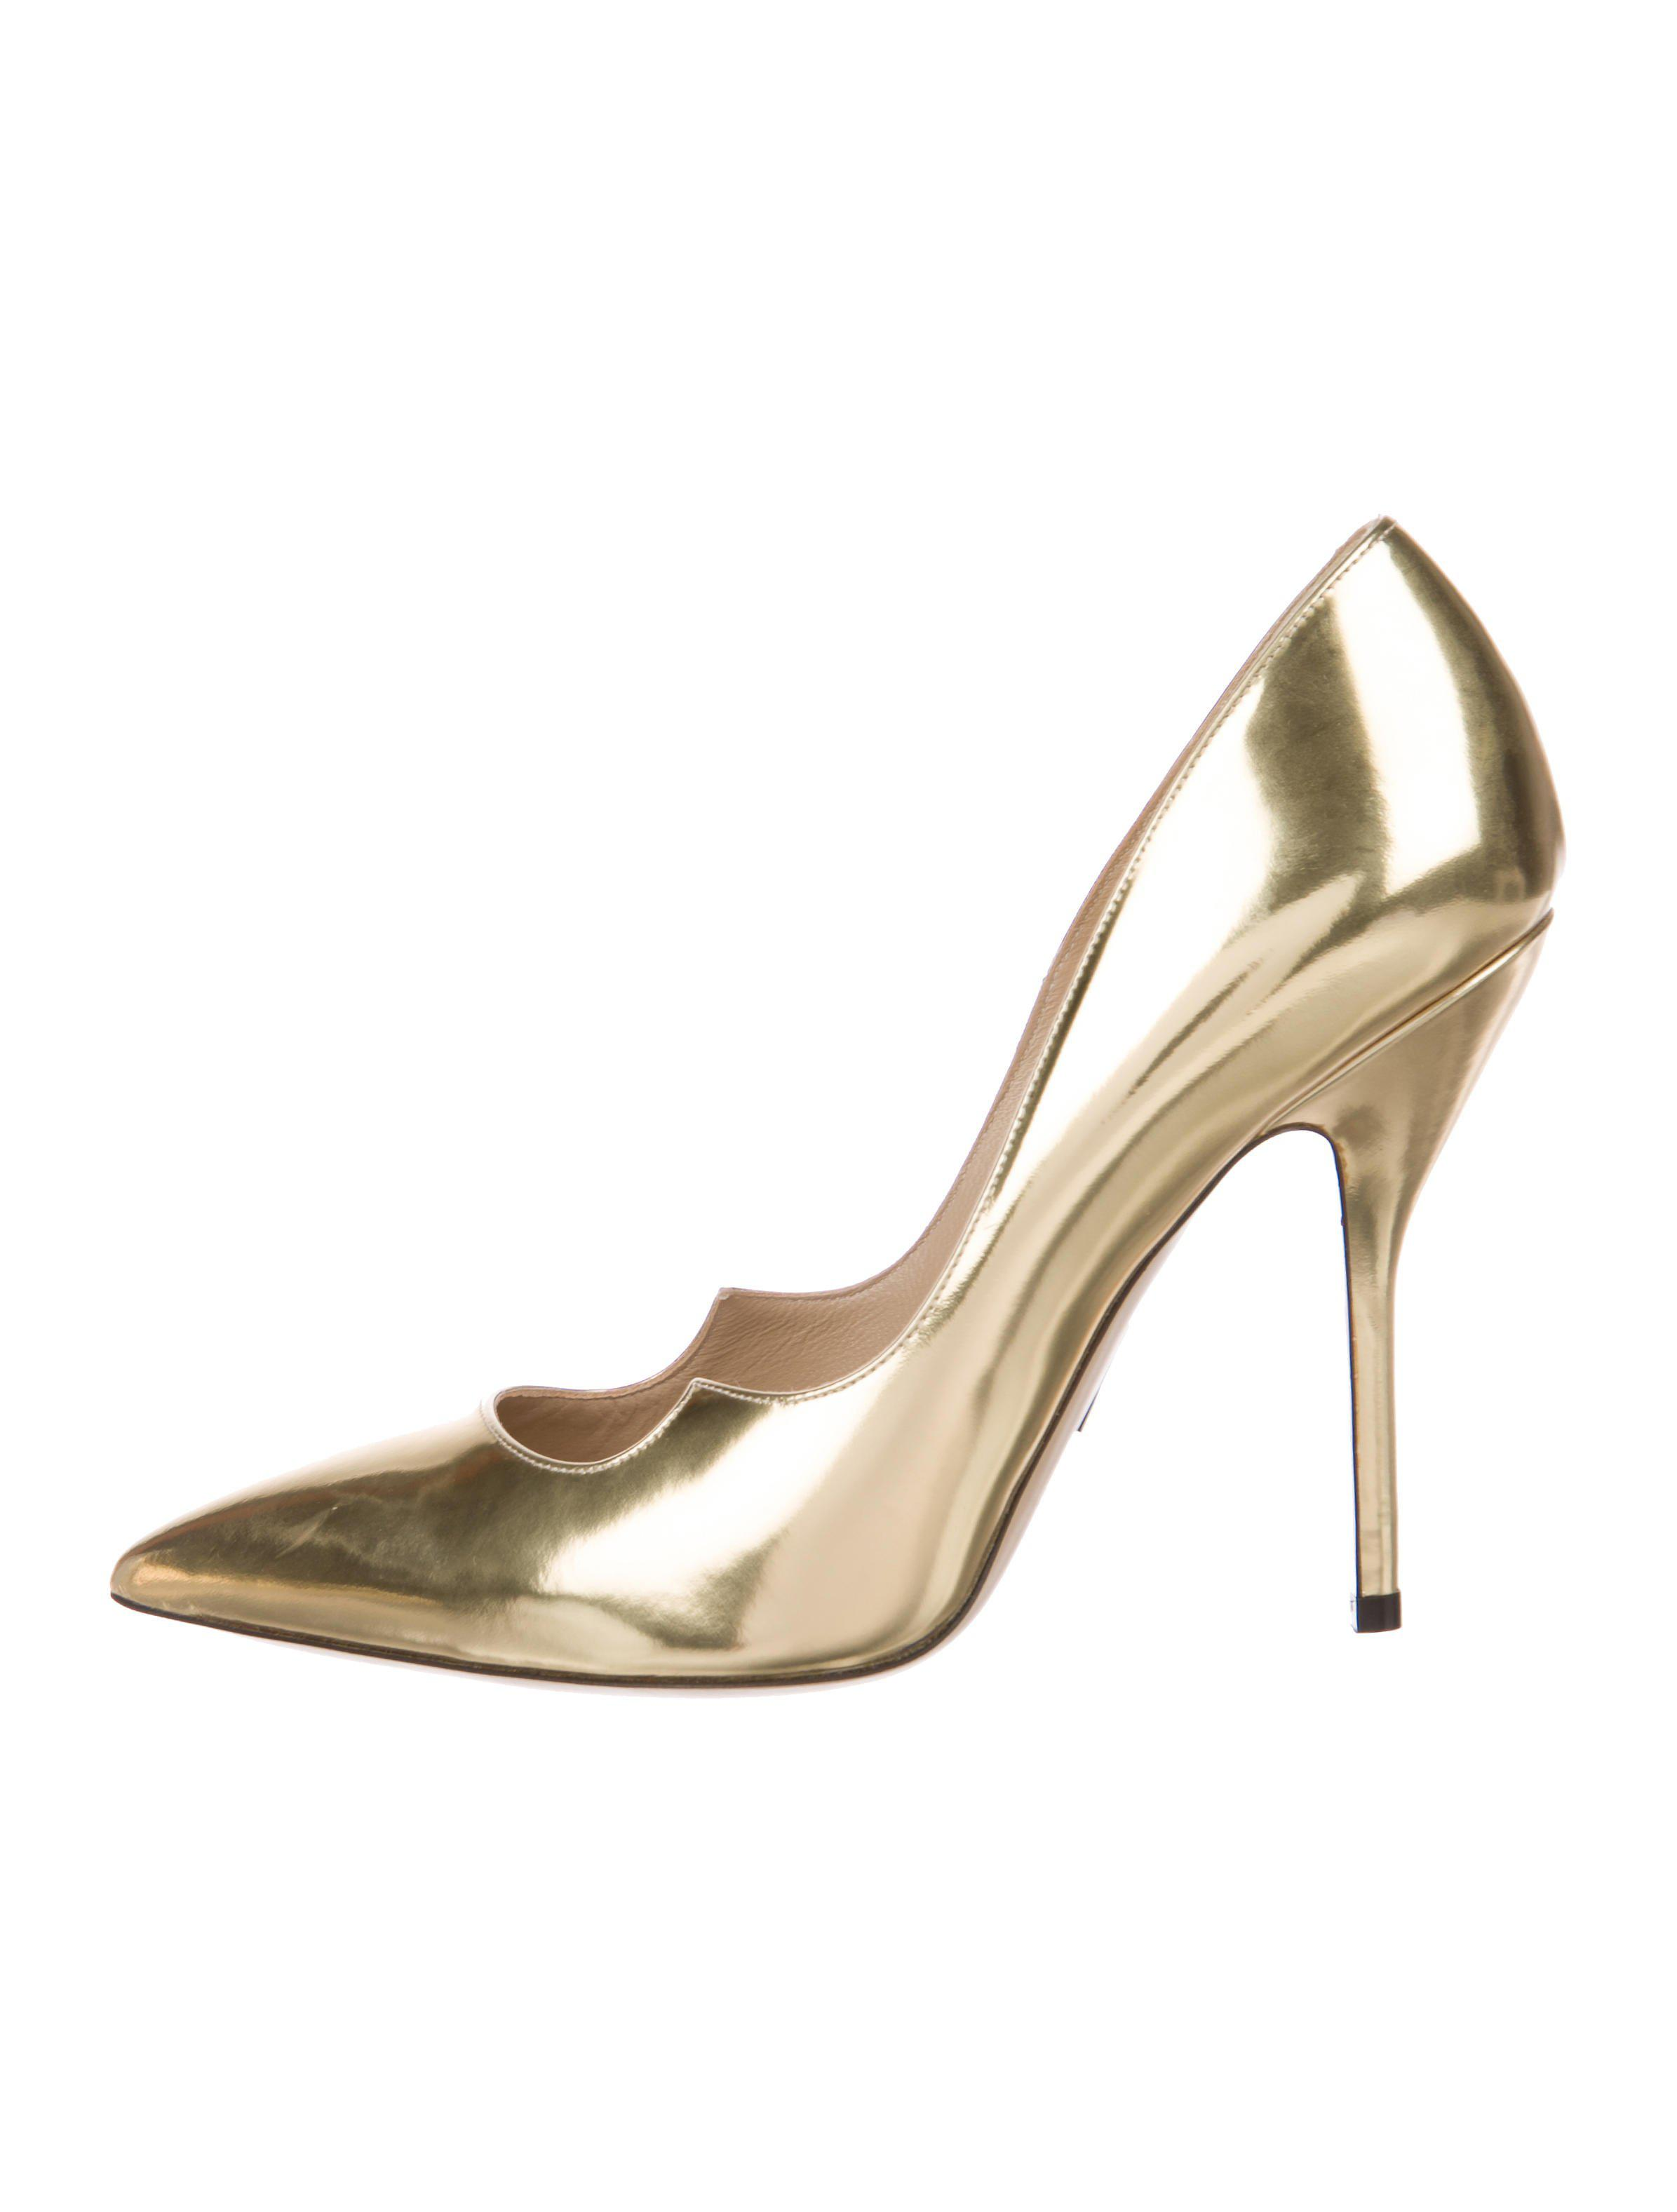 4208c08a255c Lyst - Paul Andrew Patent Leather Pointed-toe Pumps Gold in Metallic